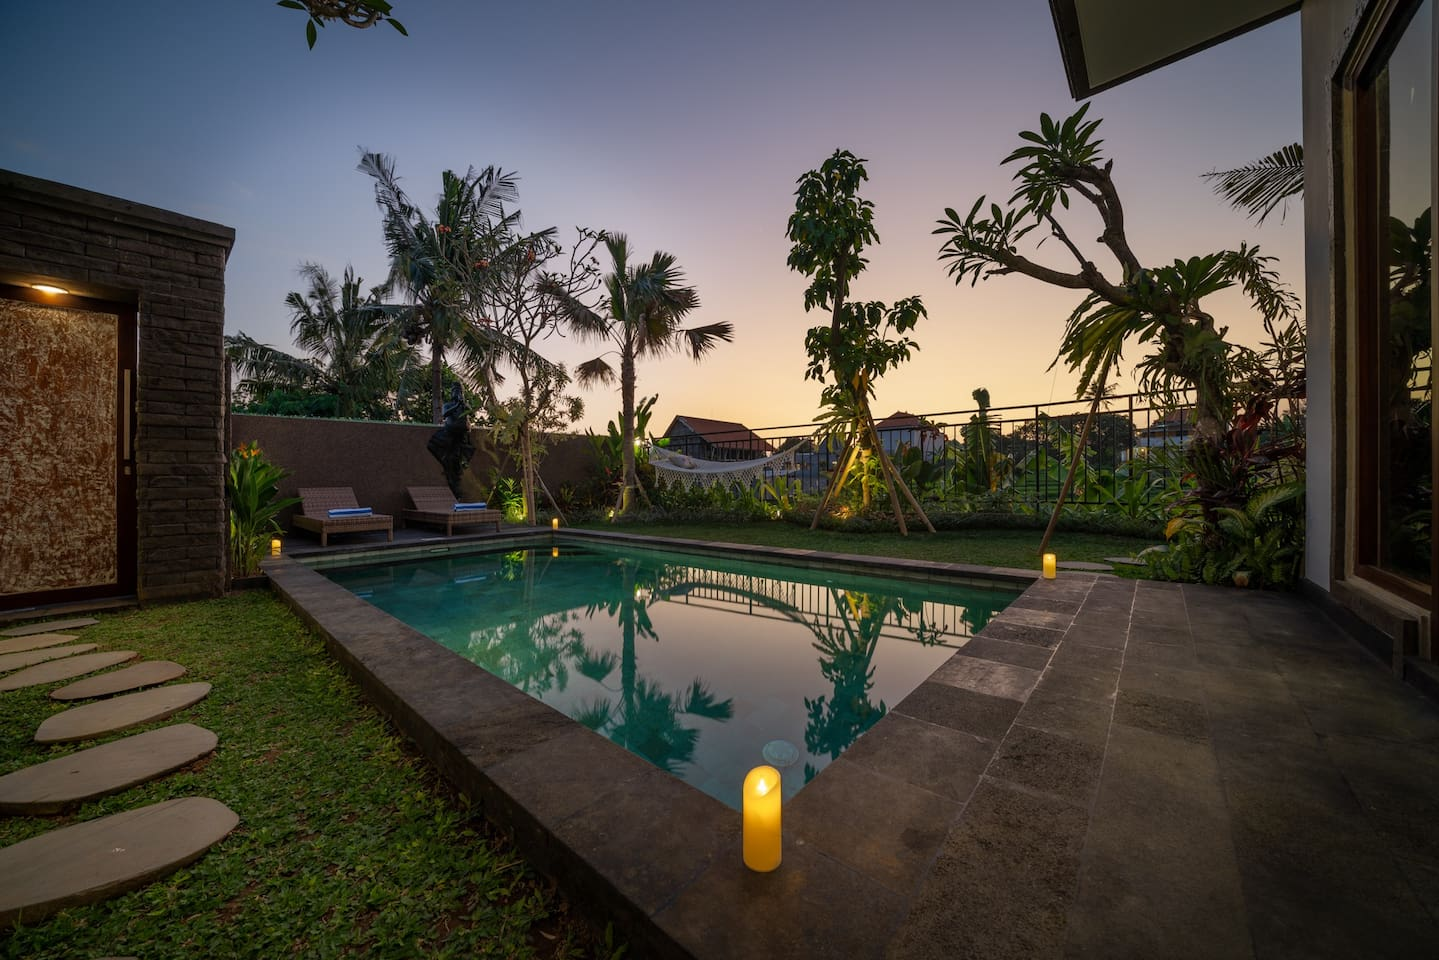 Sunset living-room view of pool, garden and rice fields